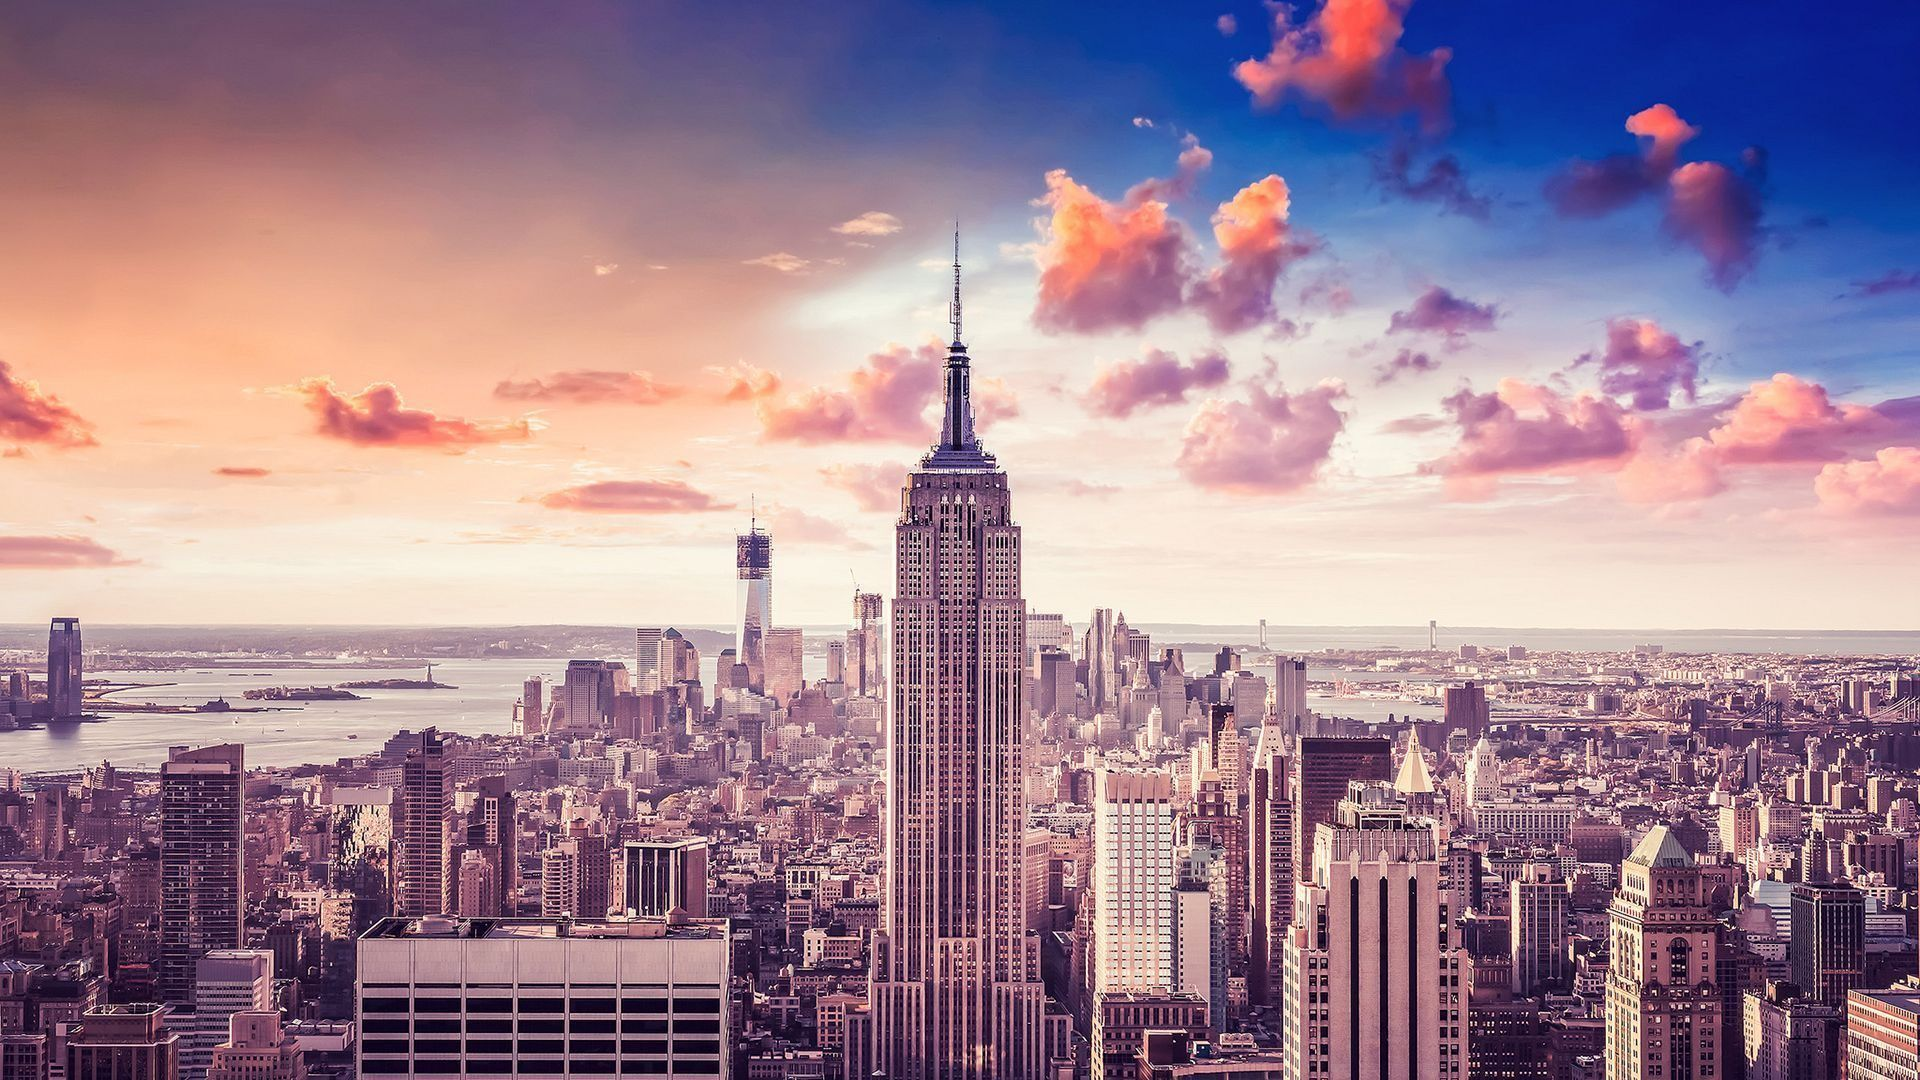 Live from Holland America Line Koningsdam: Hits & Misses